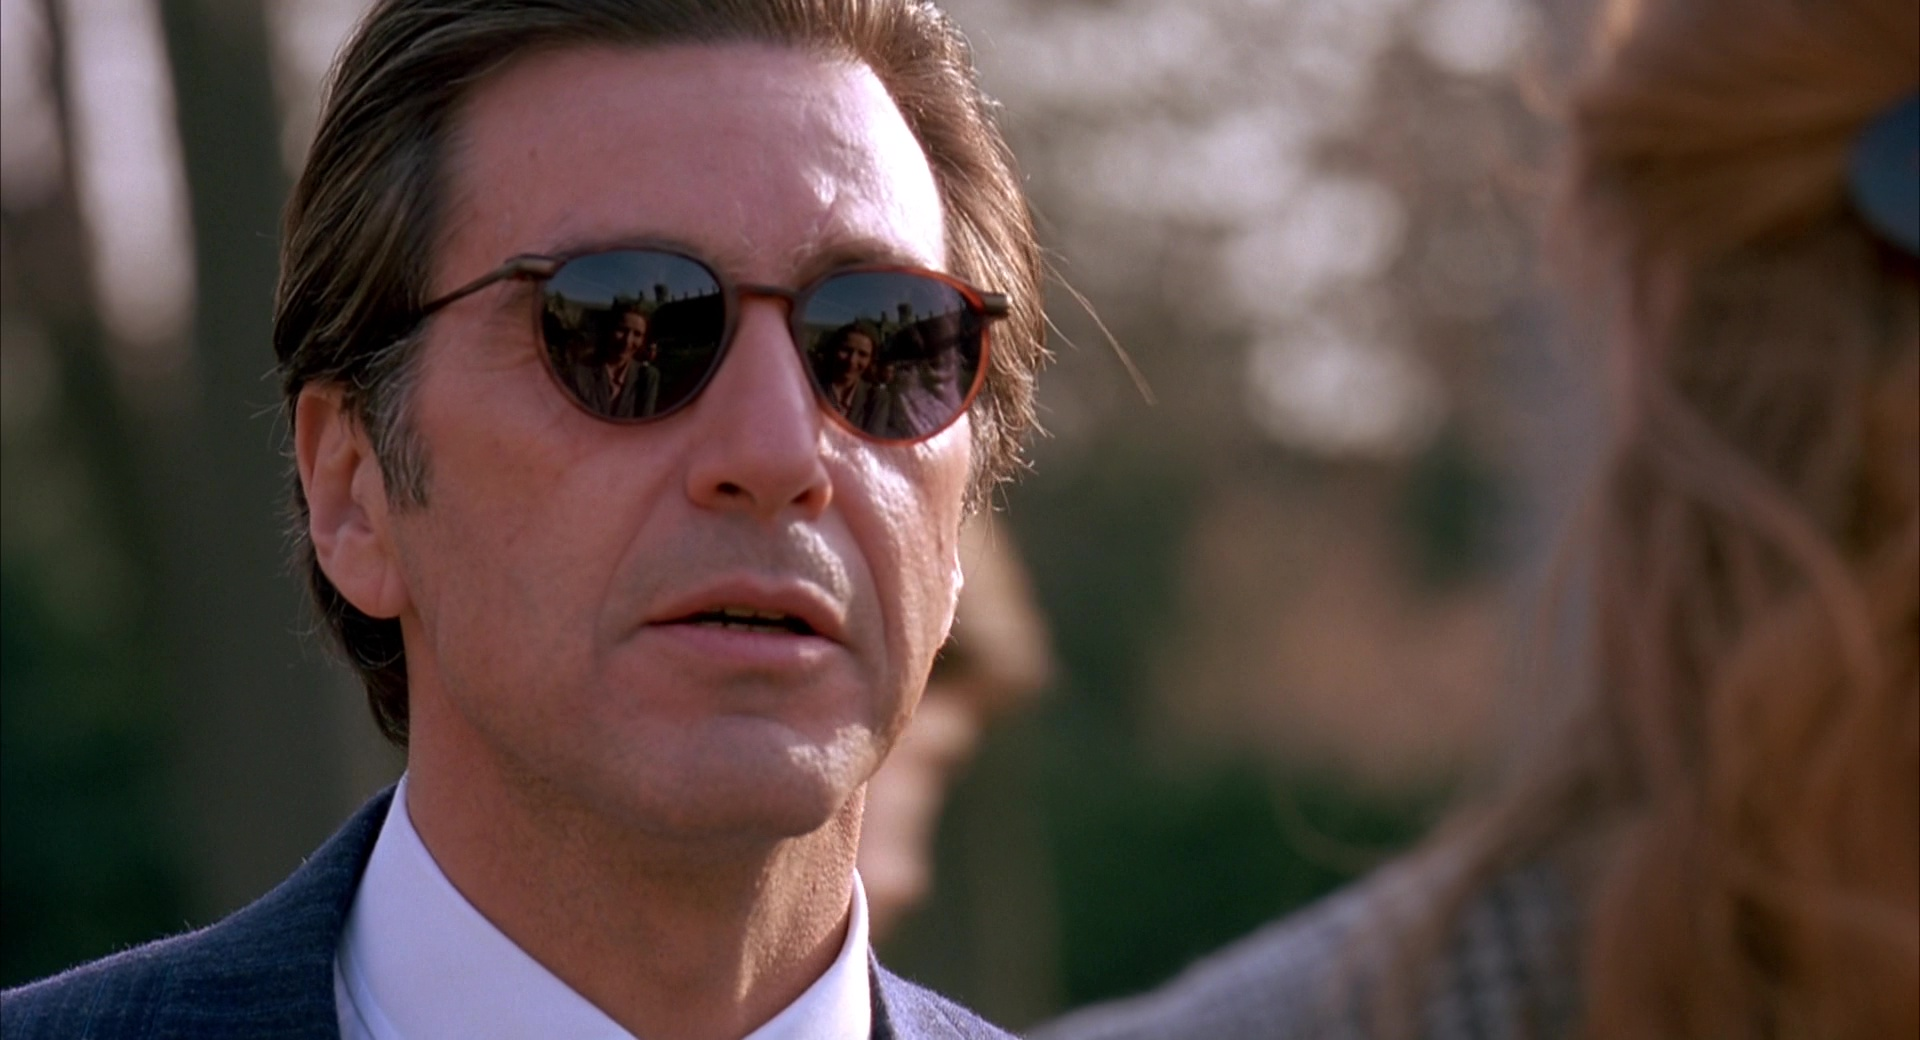 Matsuda Sunglasses Worn By Al Pacino In Scent Of A Woman